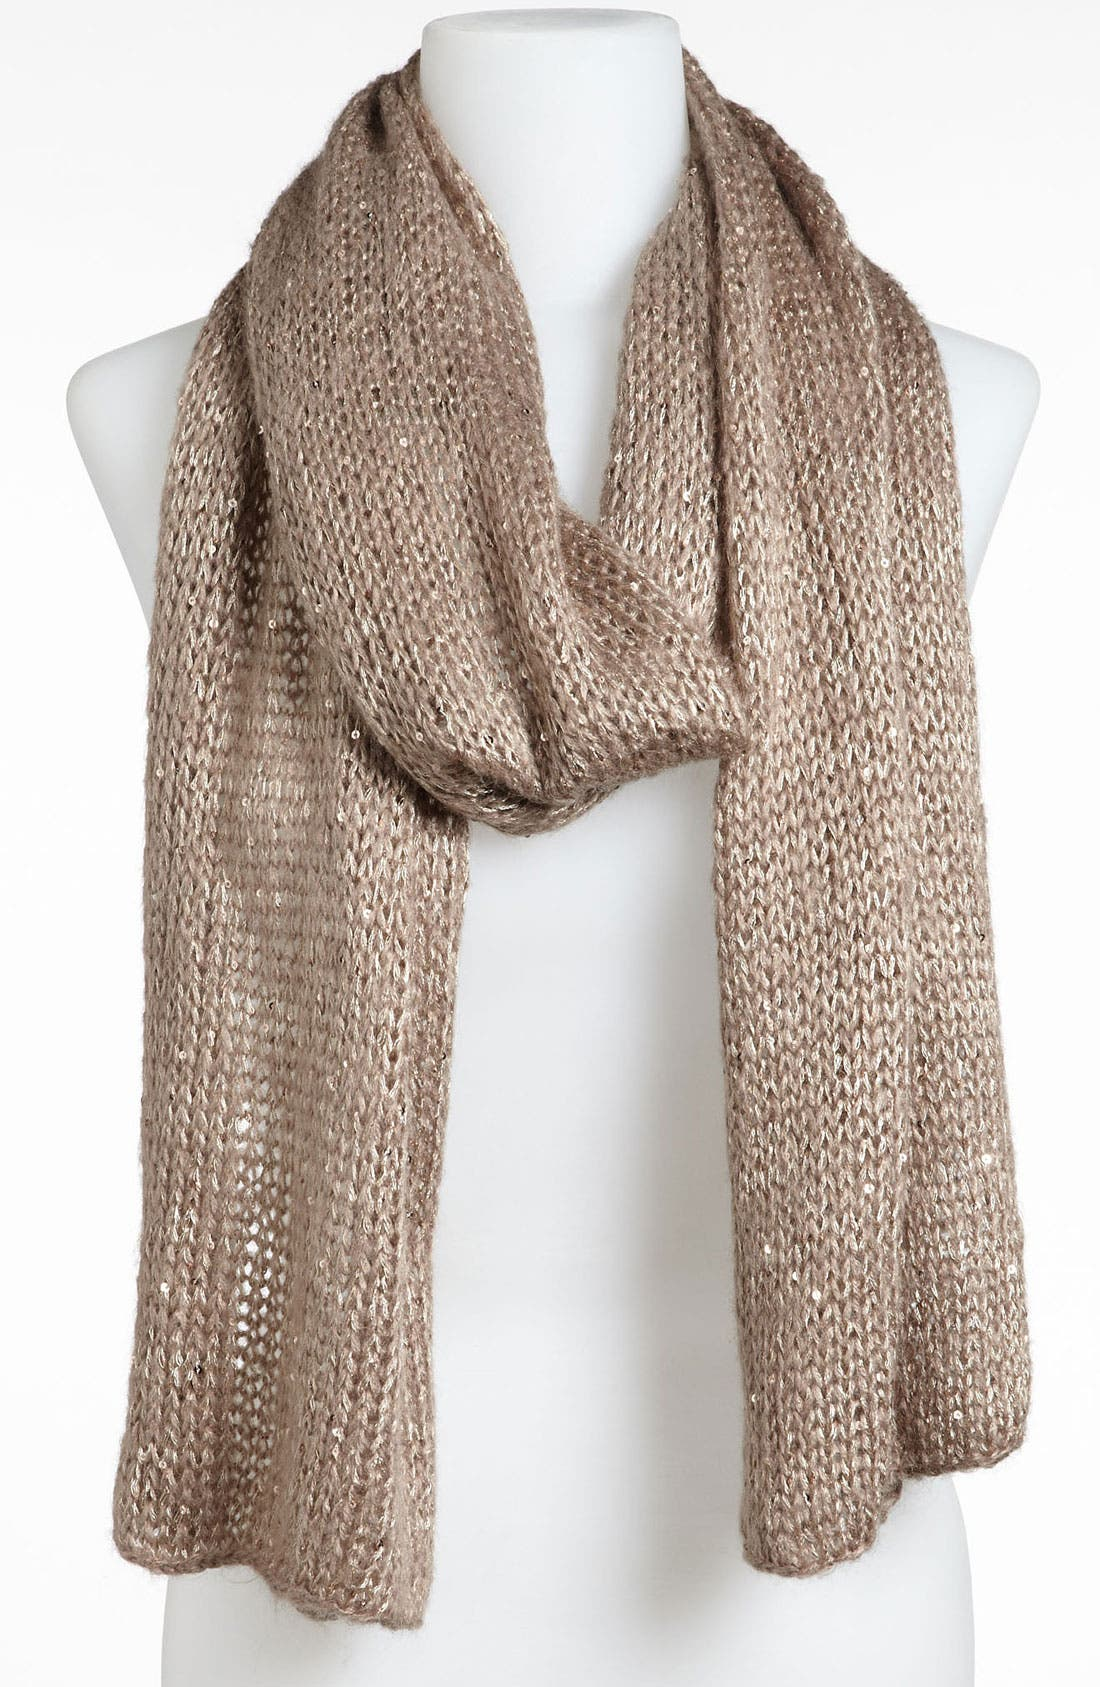 Main Image - BP. Sequin Metallic Knit Scarf